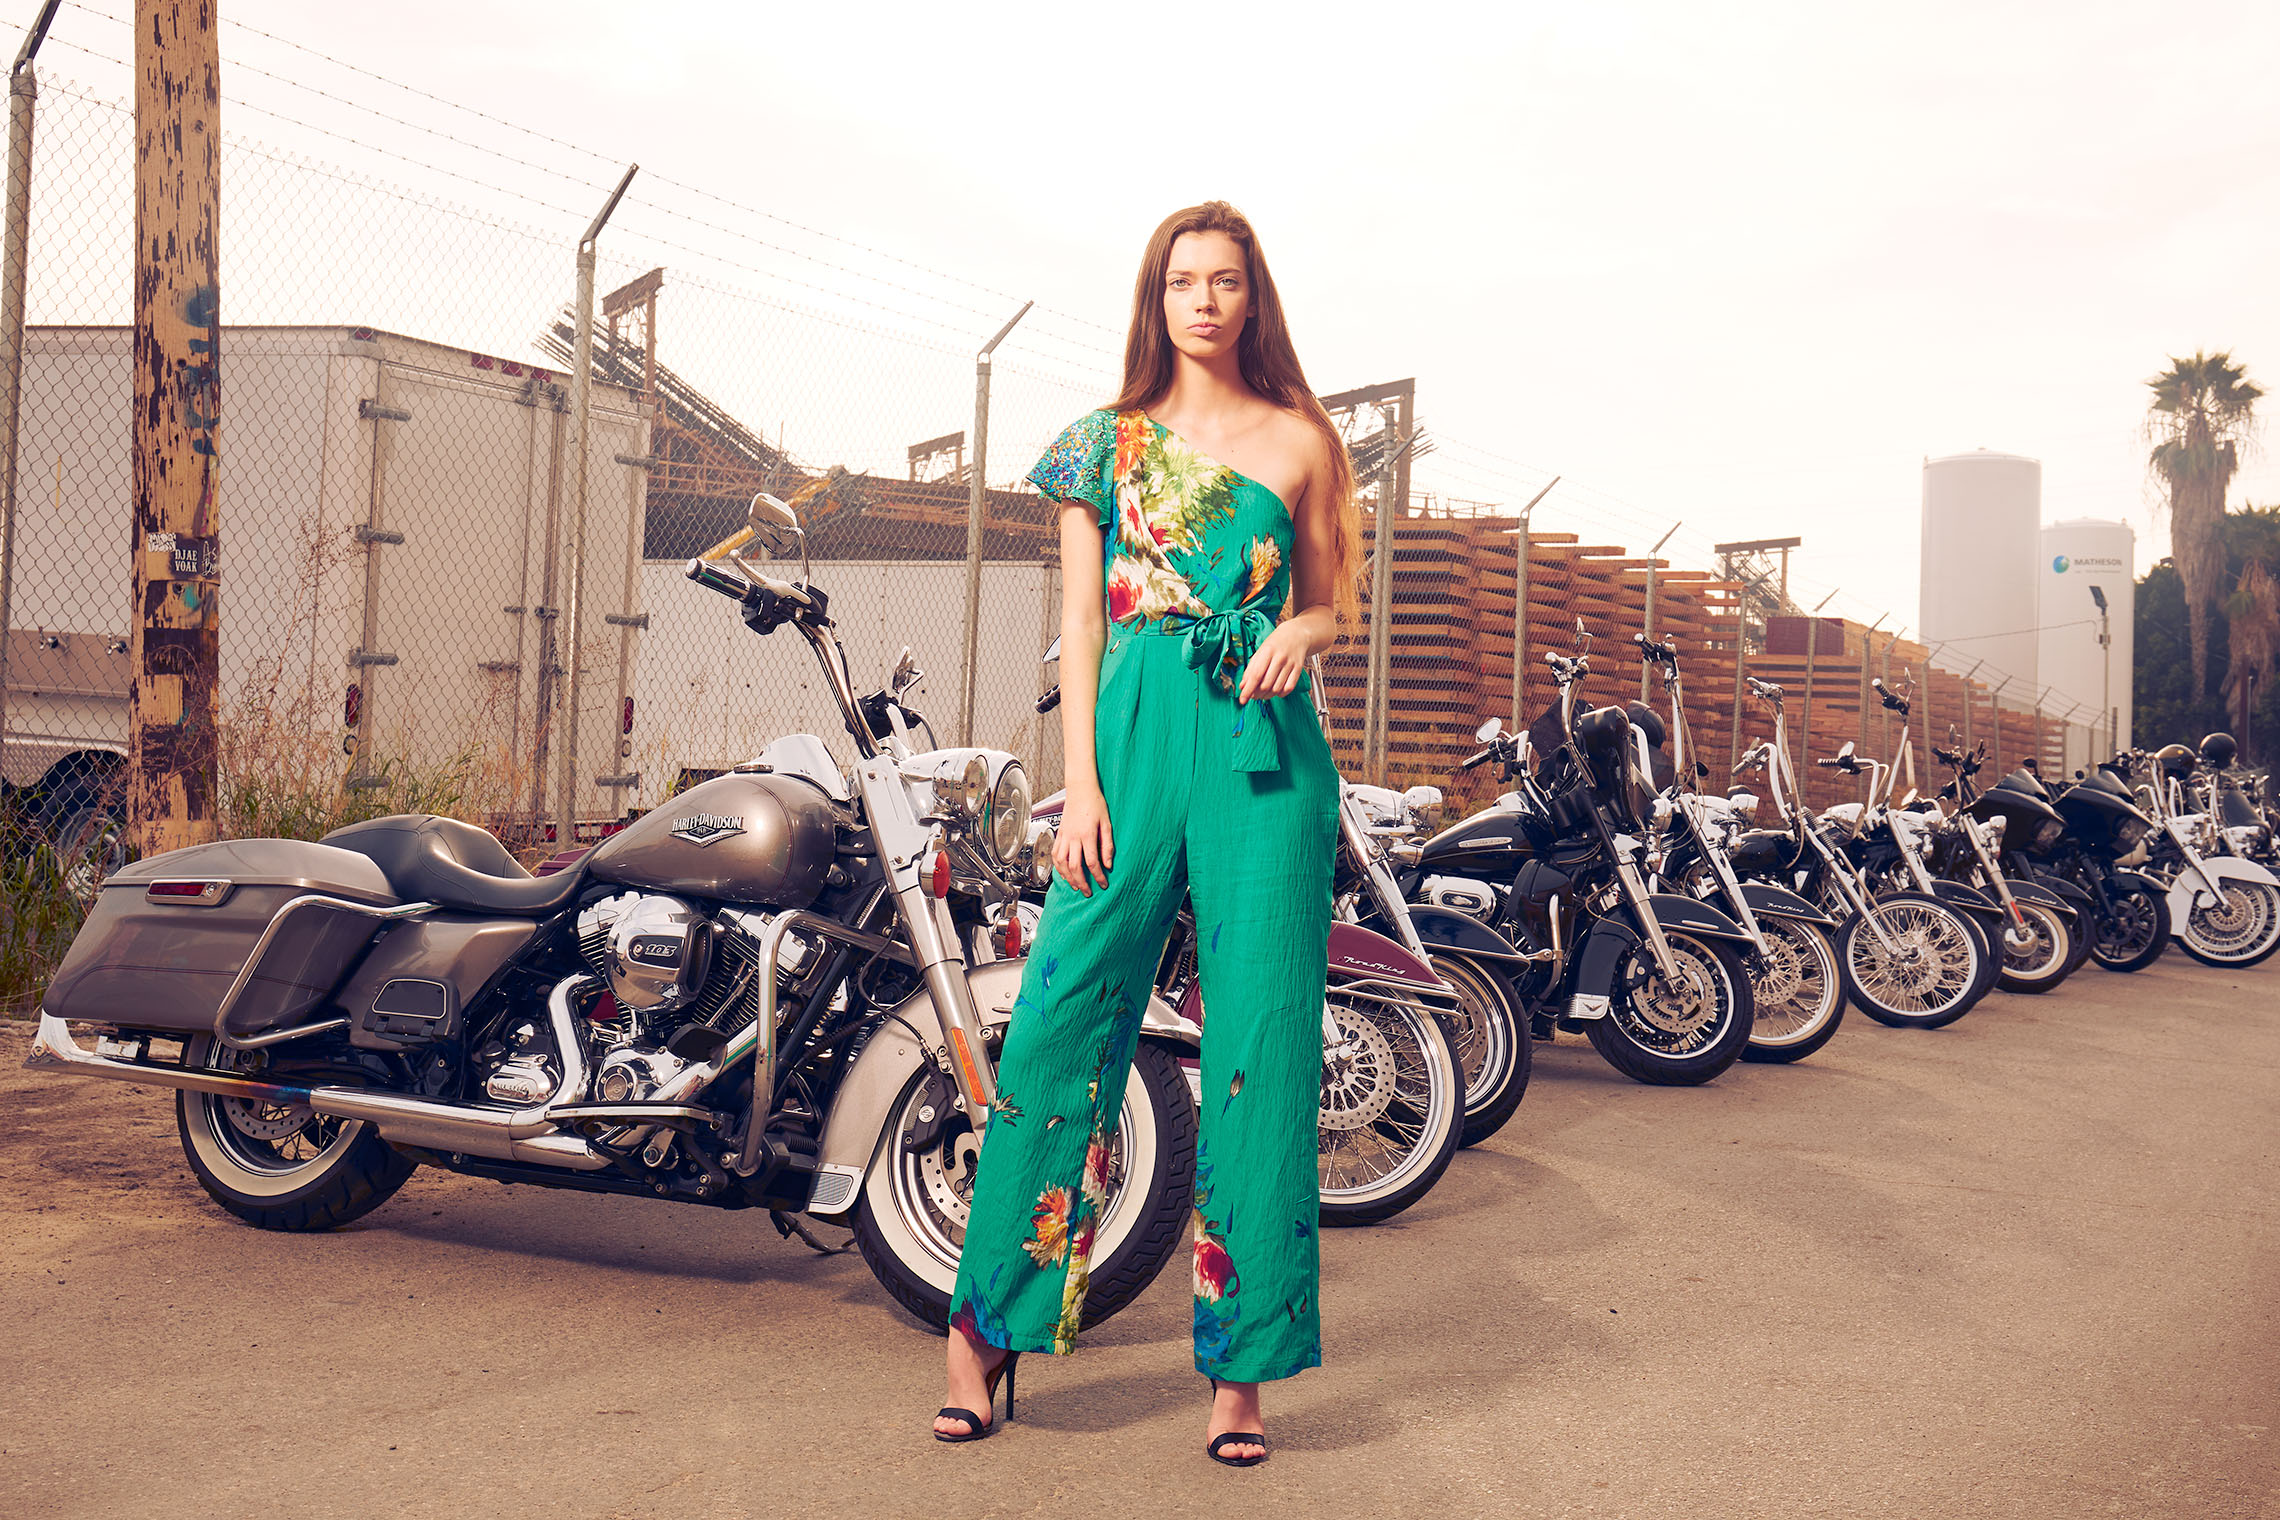 Girl-and-motorcycles-fashion-photographer-Los-Angeles-New-York